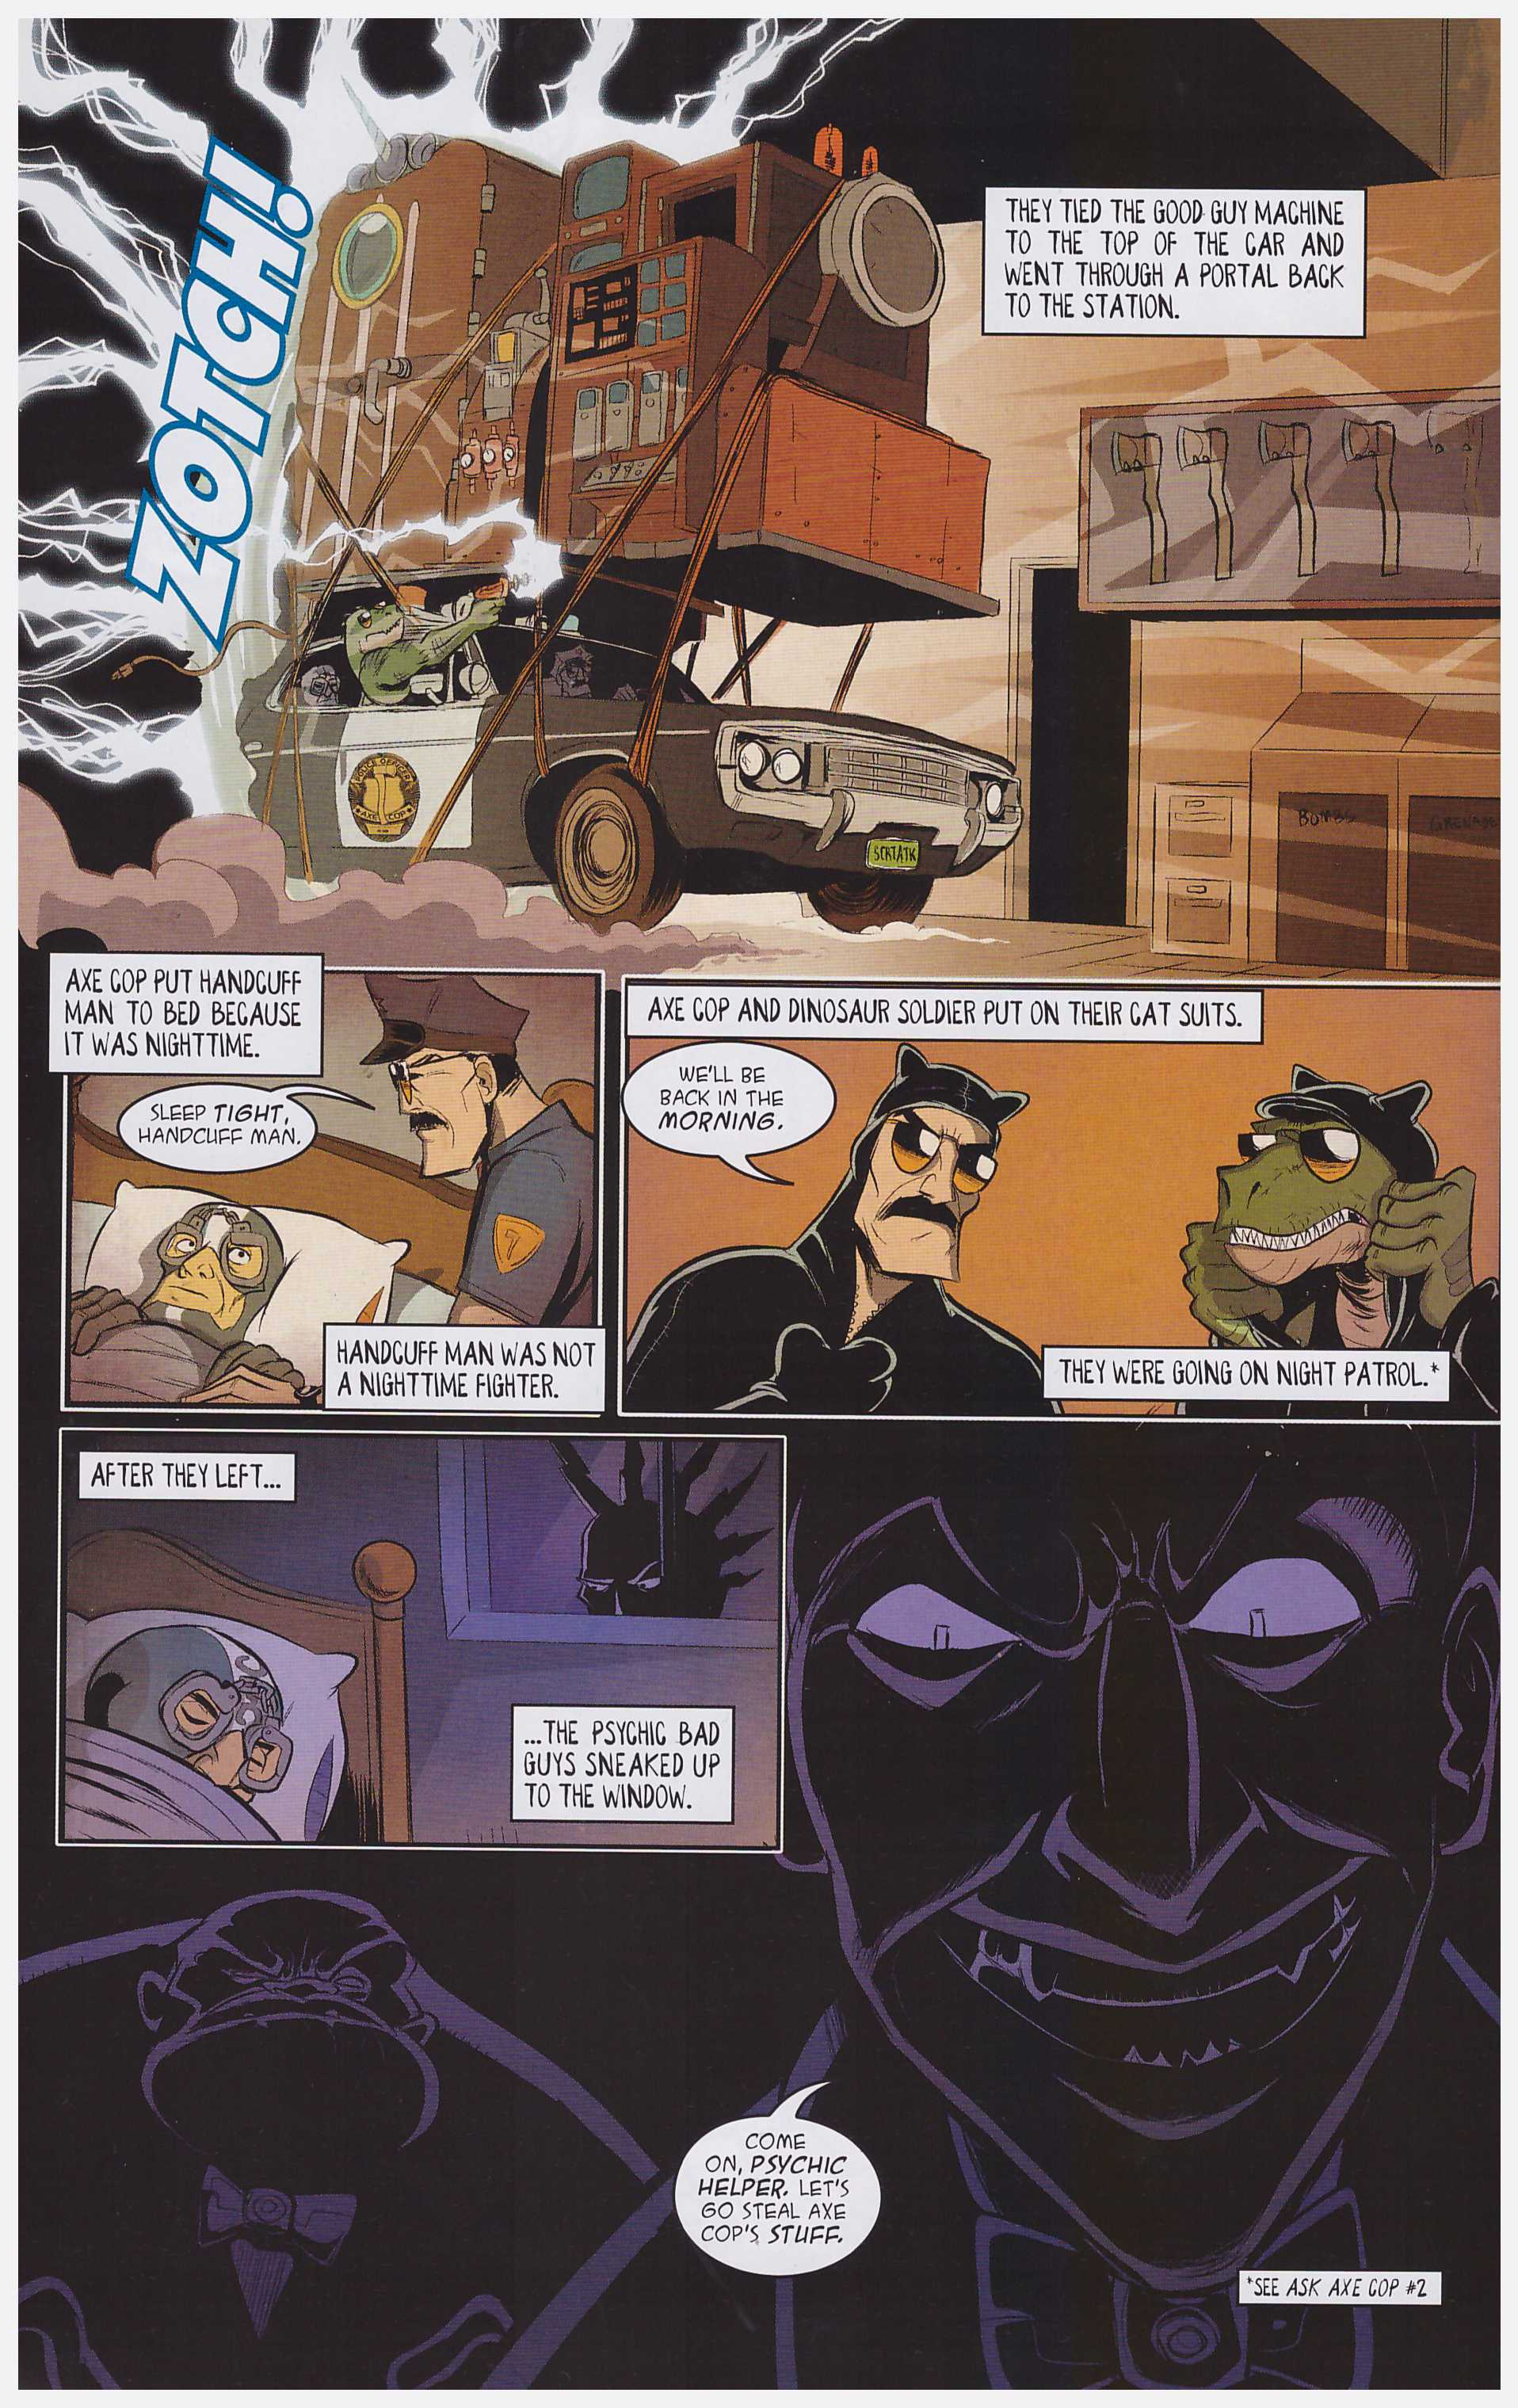 Axe Cop Bad Guy Earth review